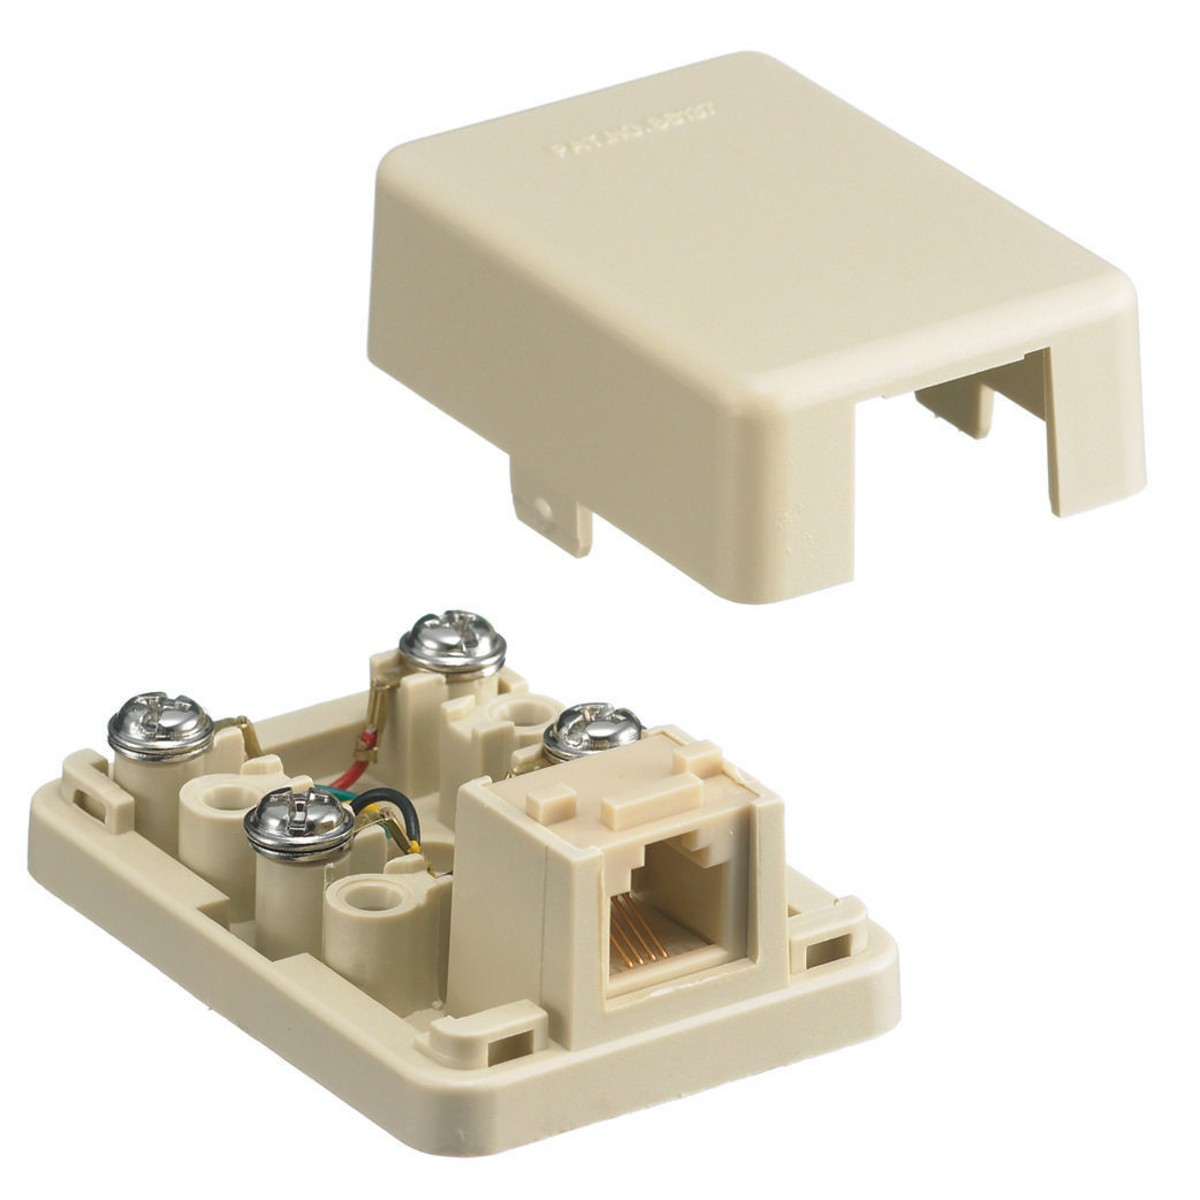 Hubbell Wiring Devices NS760I Ivory Thermoplastic 6-Position 4-Conductor Surface Mount Telephone Wall Jack